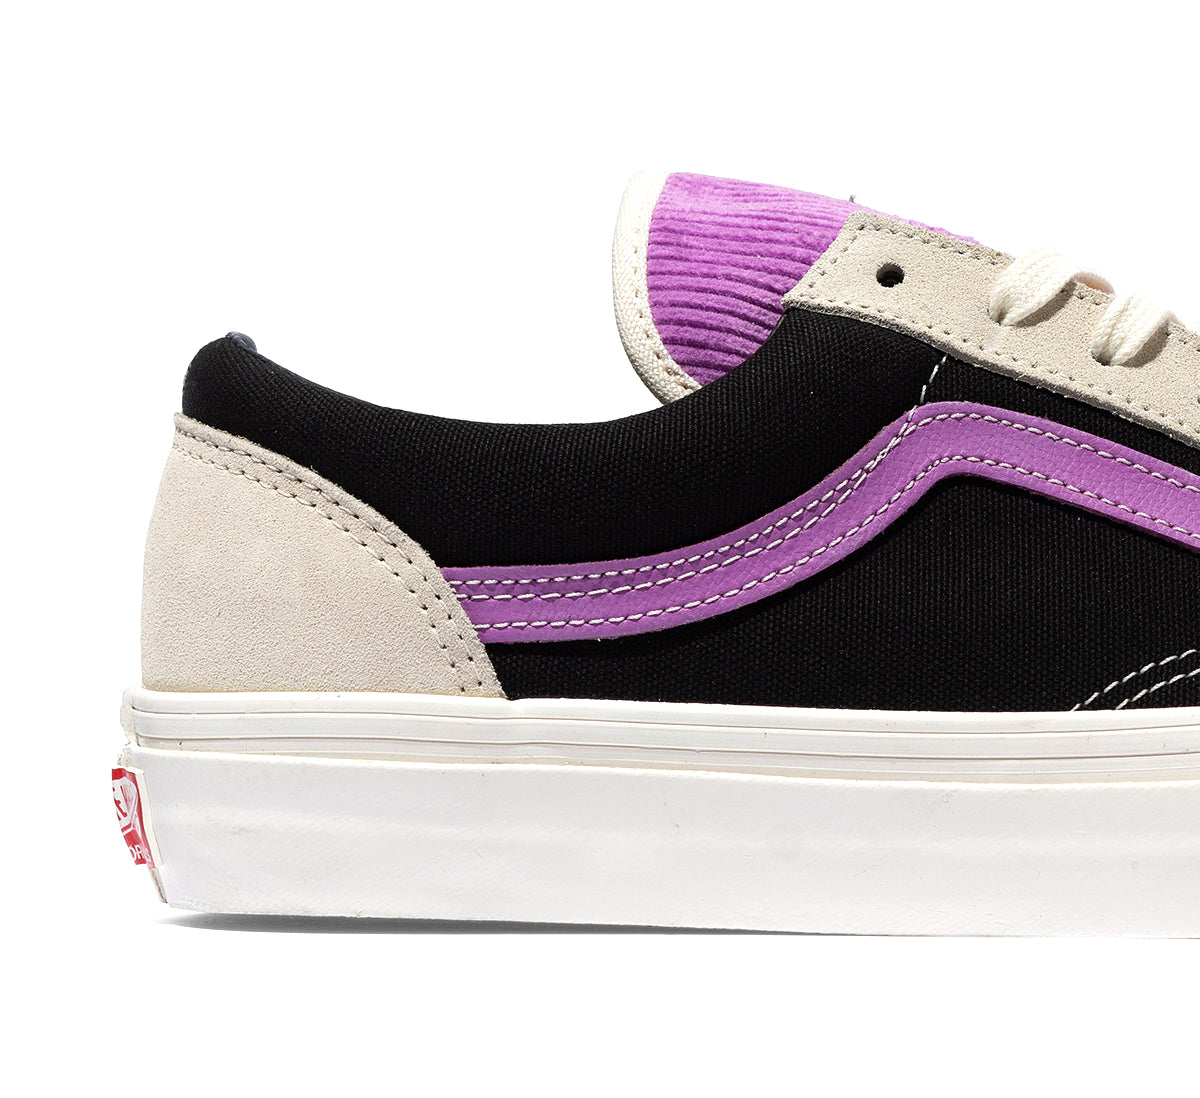 Vans UA OG 36 LX WhtCap – Highs and Lows